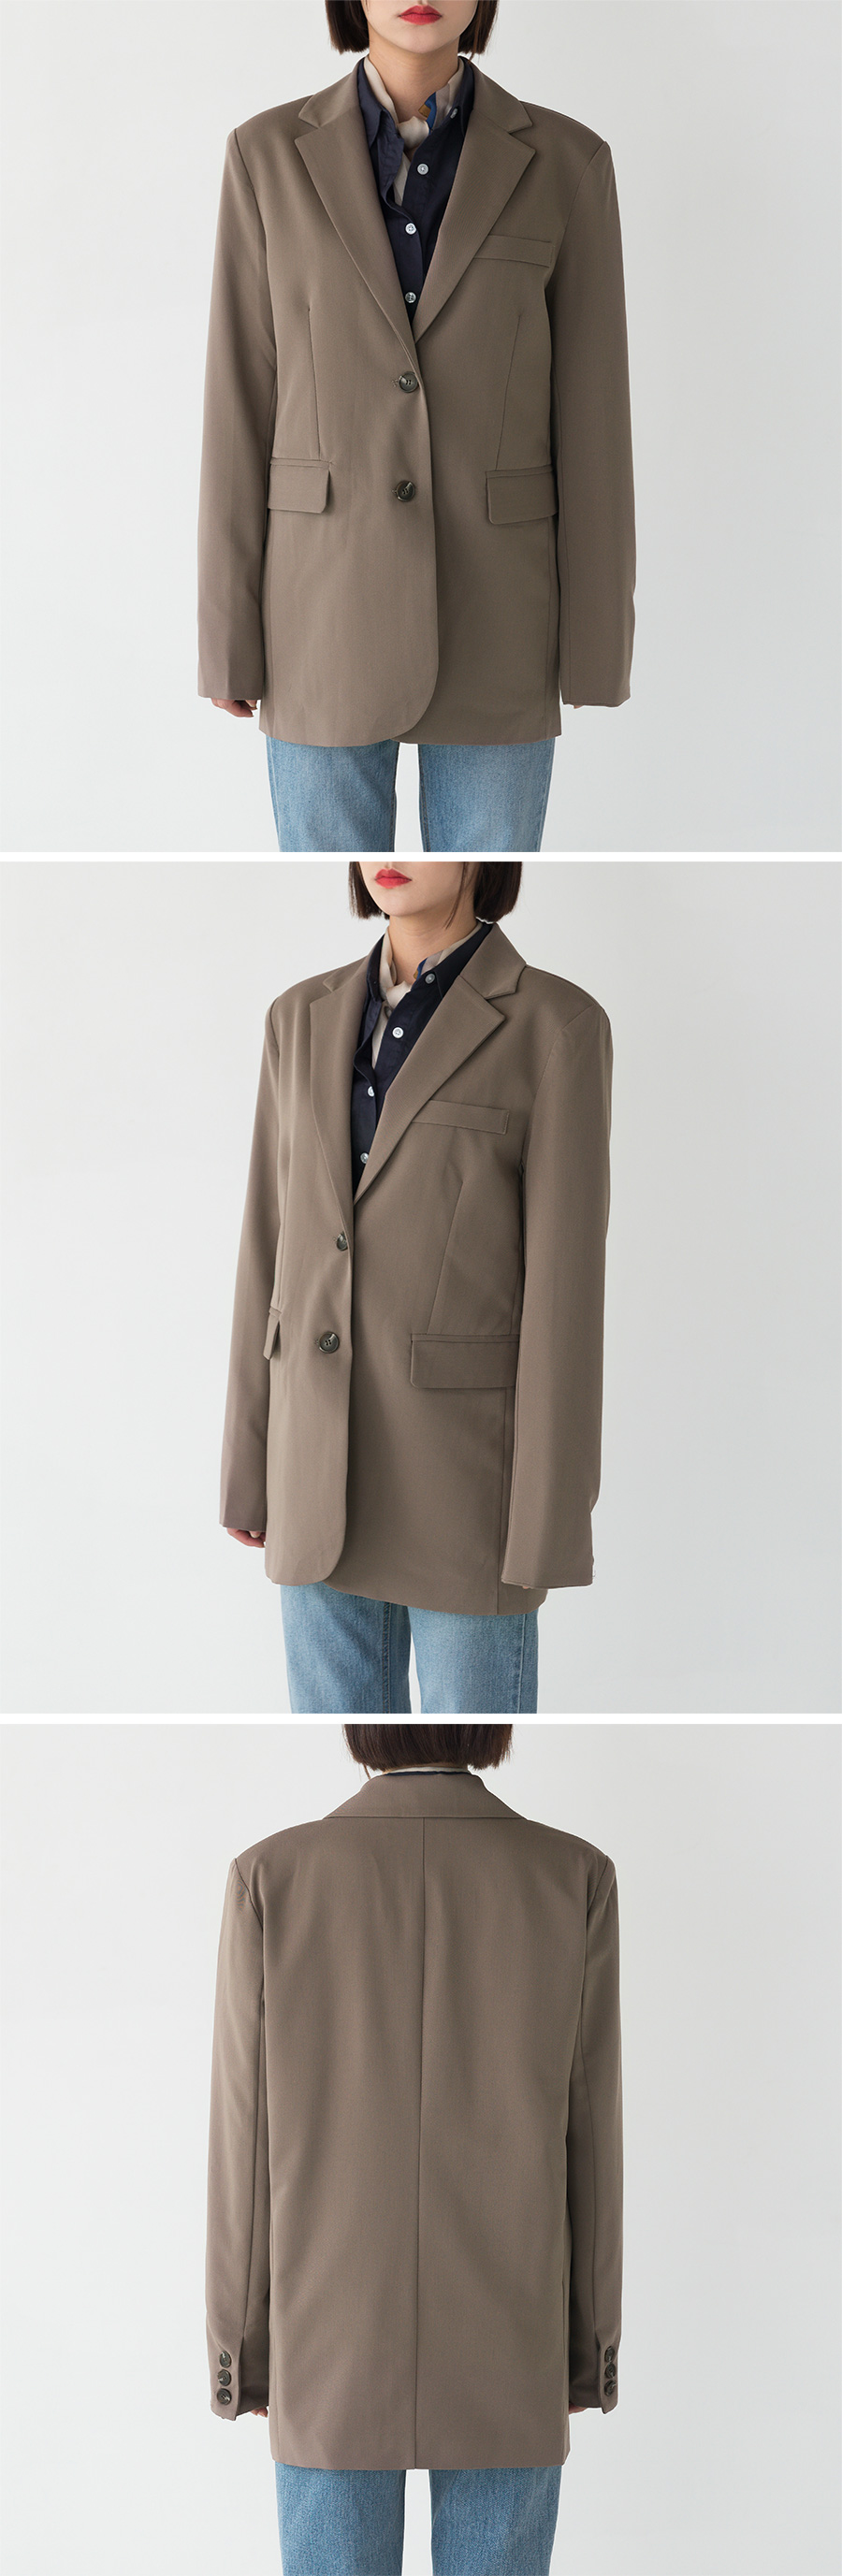 Manish Mood Basic Jacket